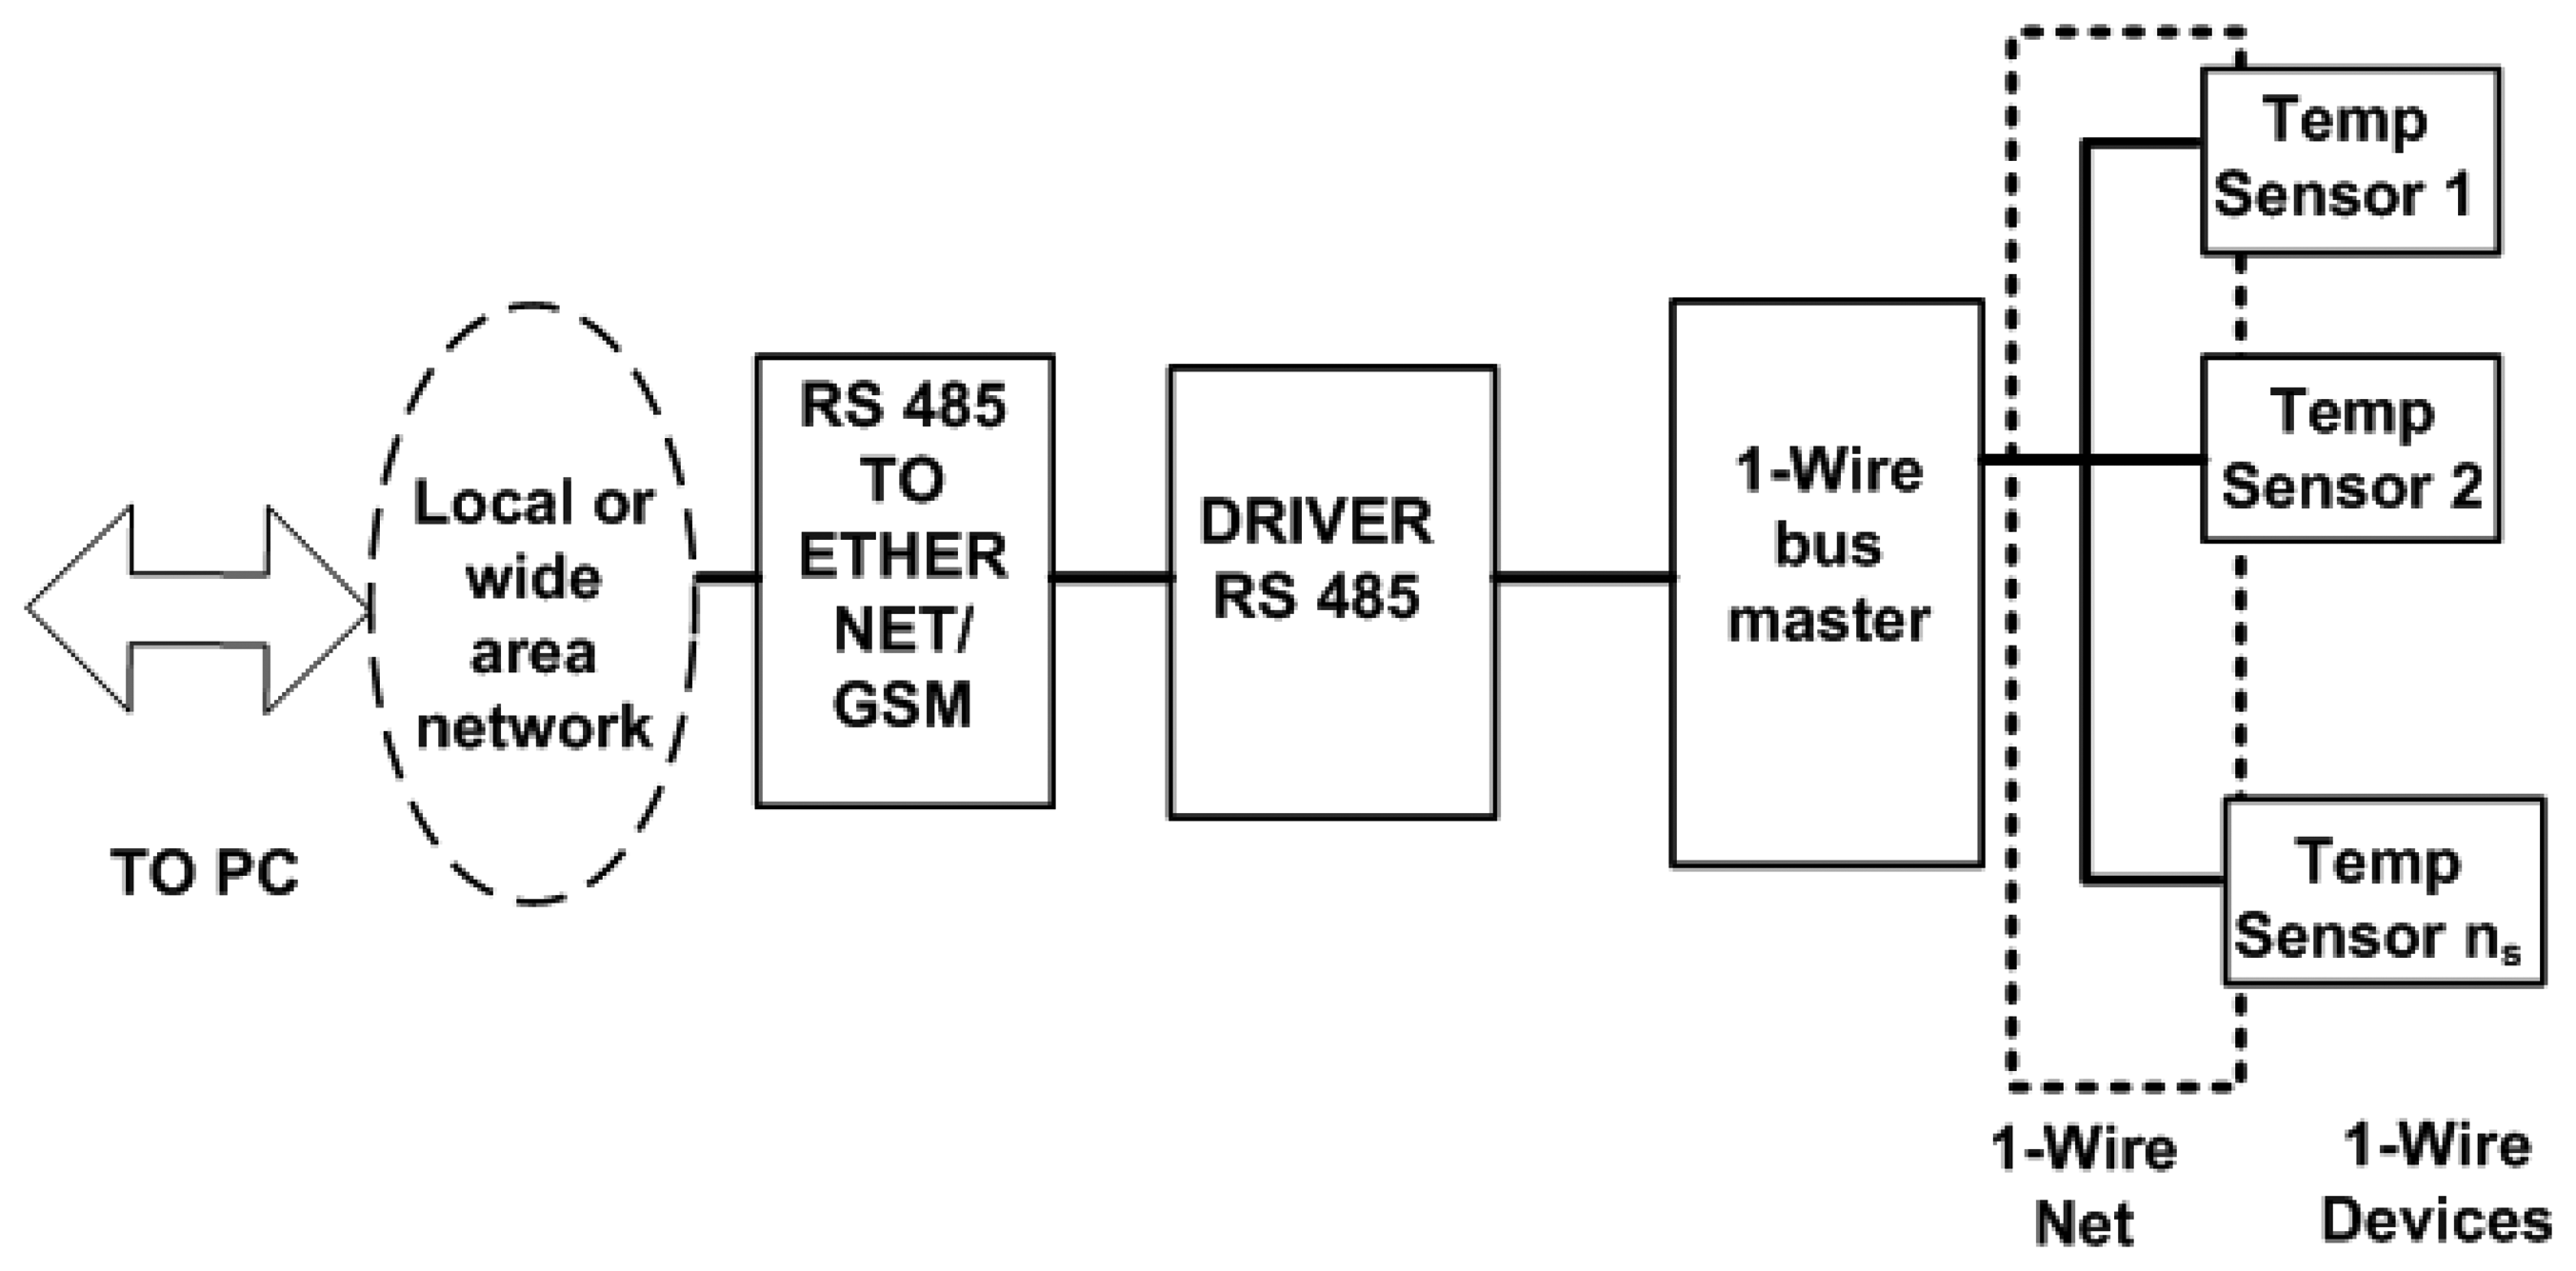 rs232 to rs485 converter circuit diagram 1996 ford ranger parts rs 485 vs wiring serial port elsavadorla